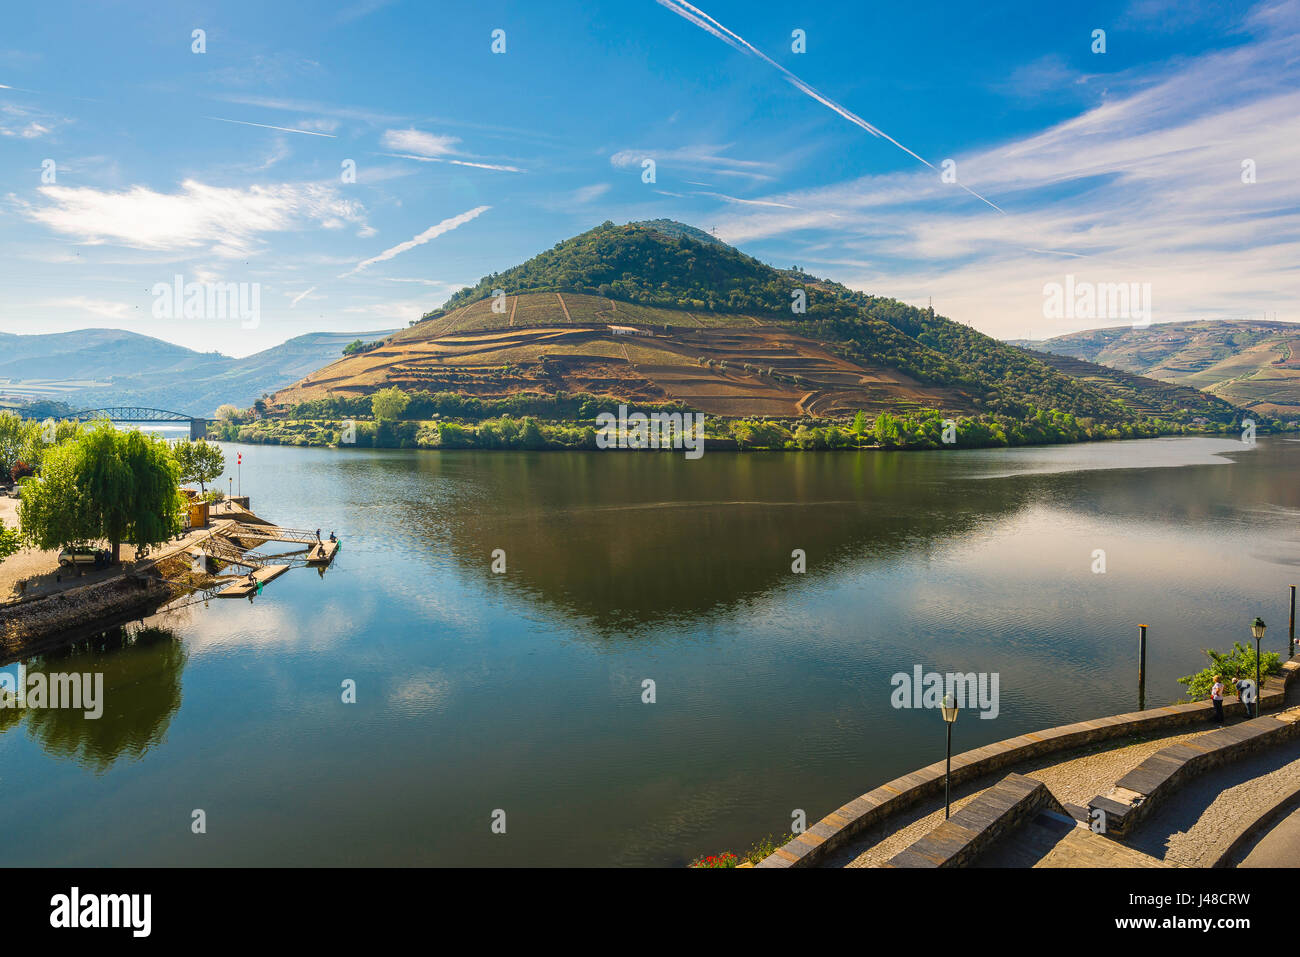 Pinhao Portugal, Pinhao waterfront showing the confluence of the Douro River and the Pinhao River in the Douro River - Stock Image